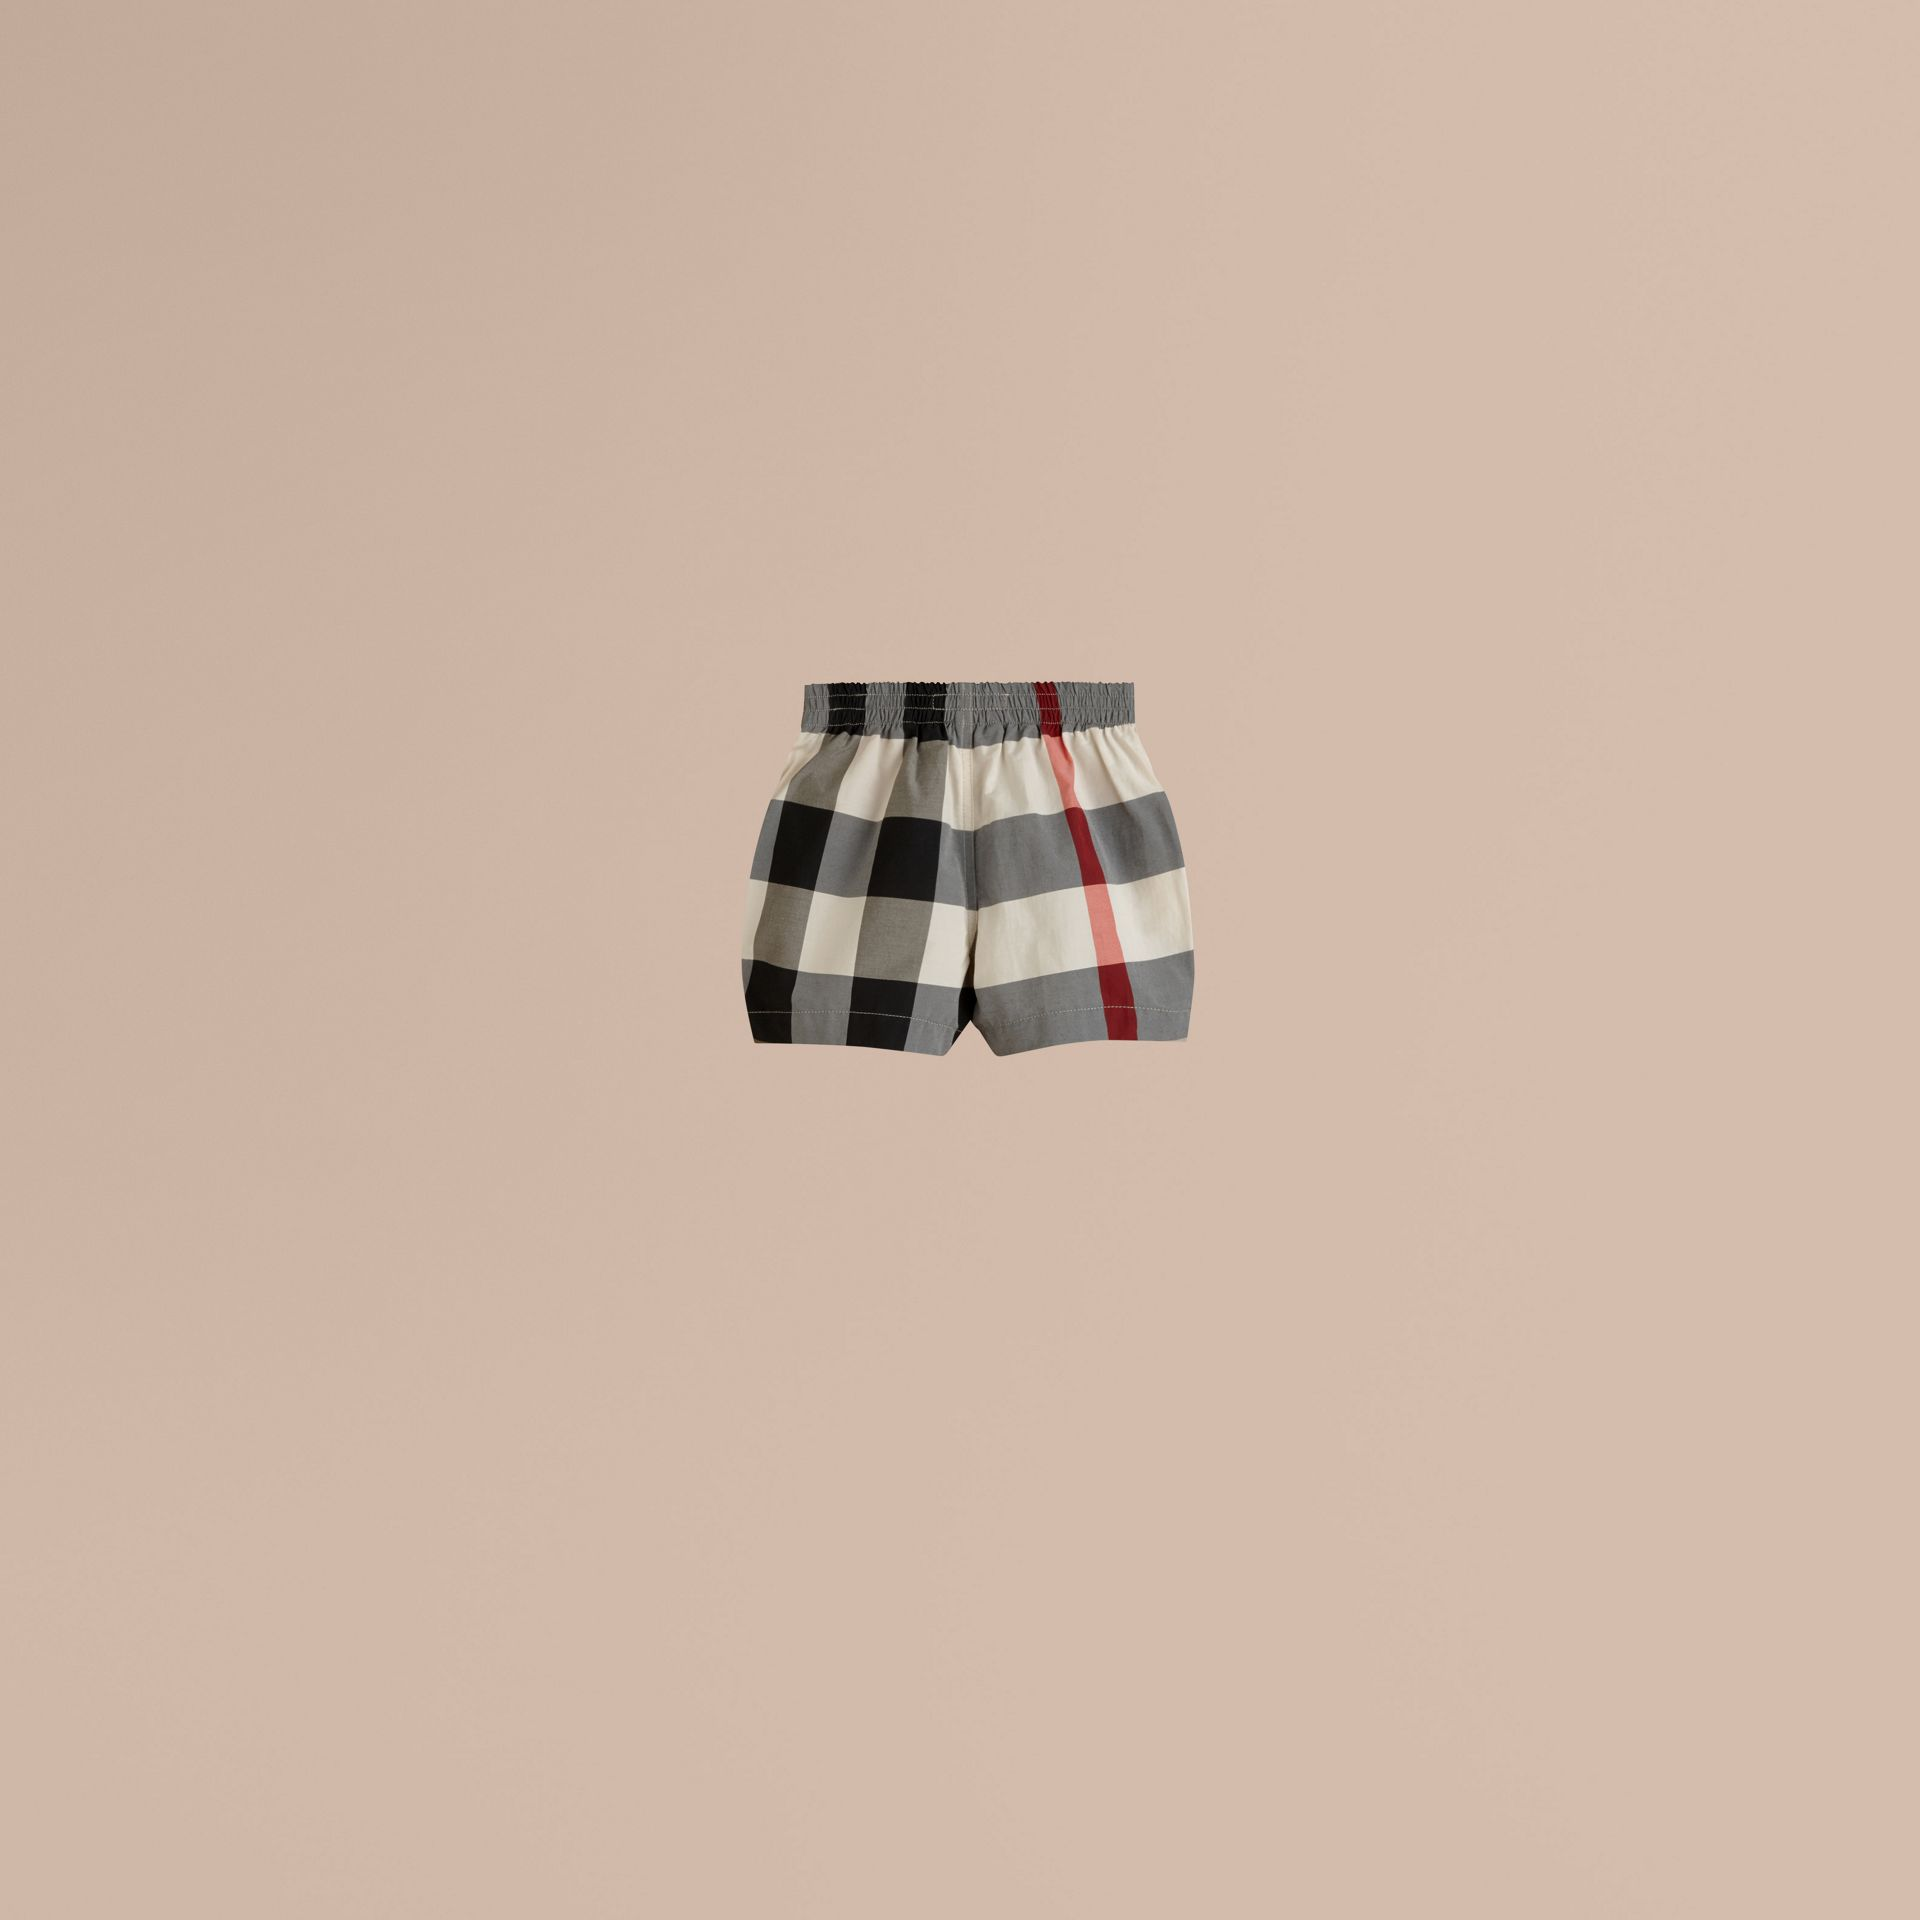 Nouveau check classique Short de bain à motif check - photo de la galerie 3